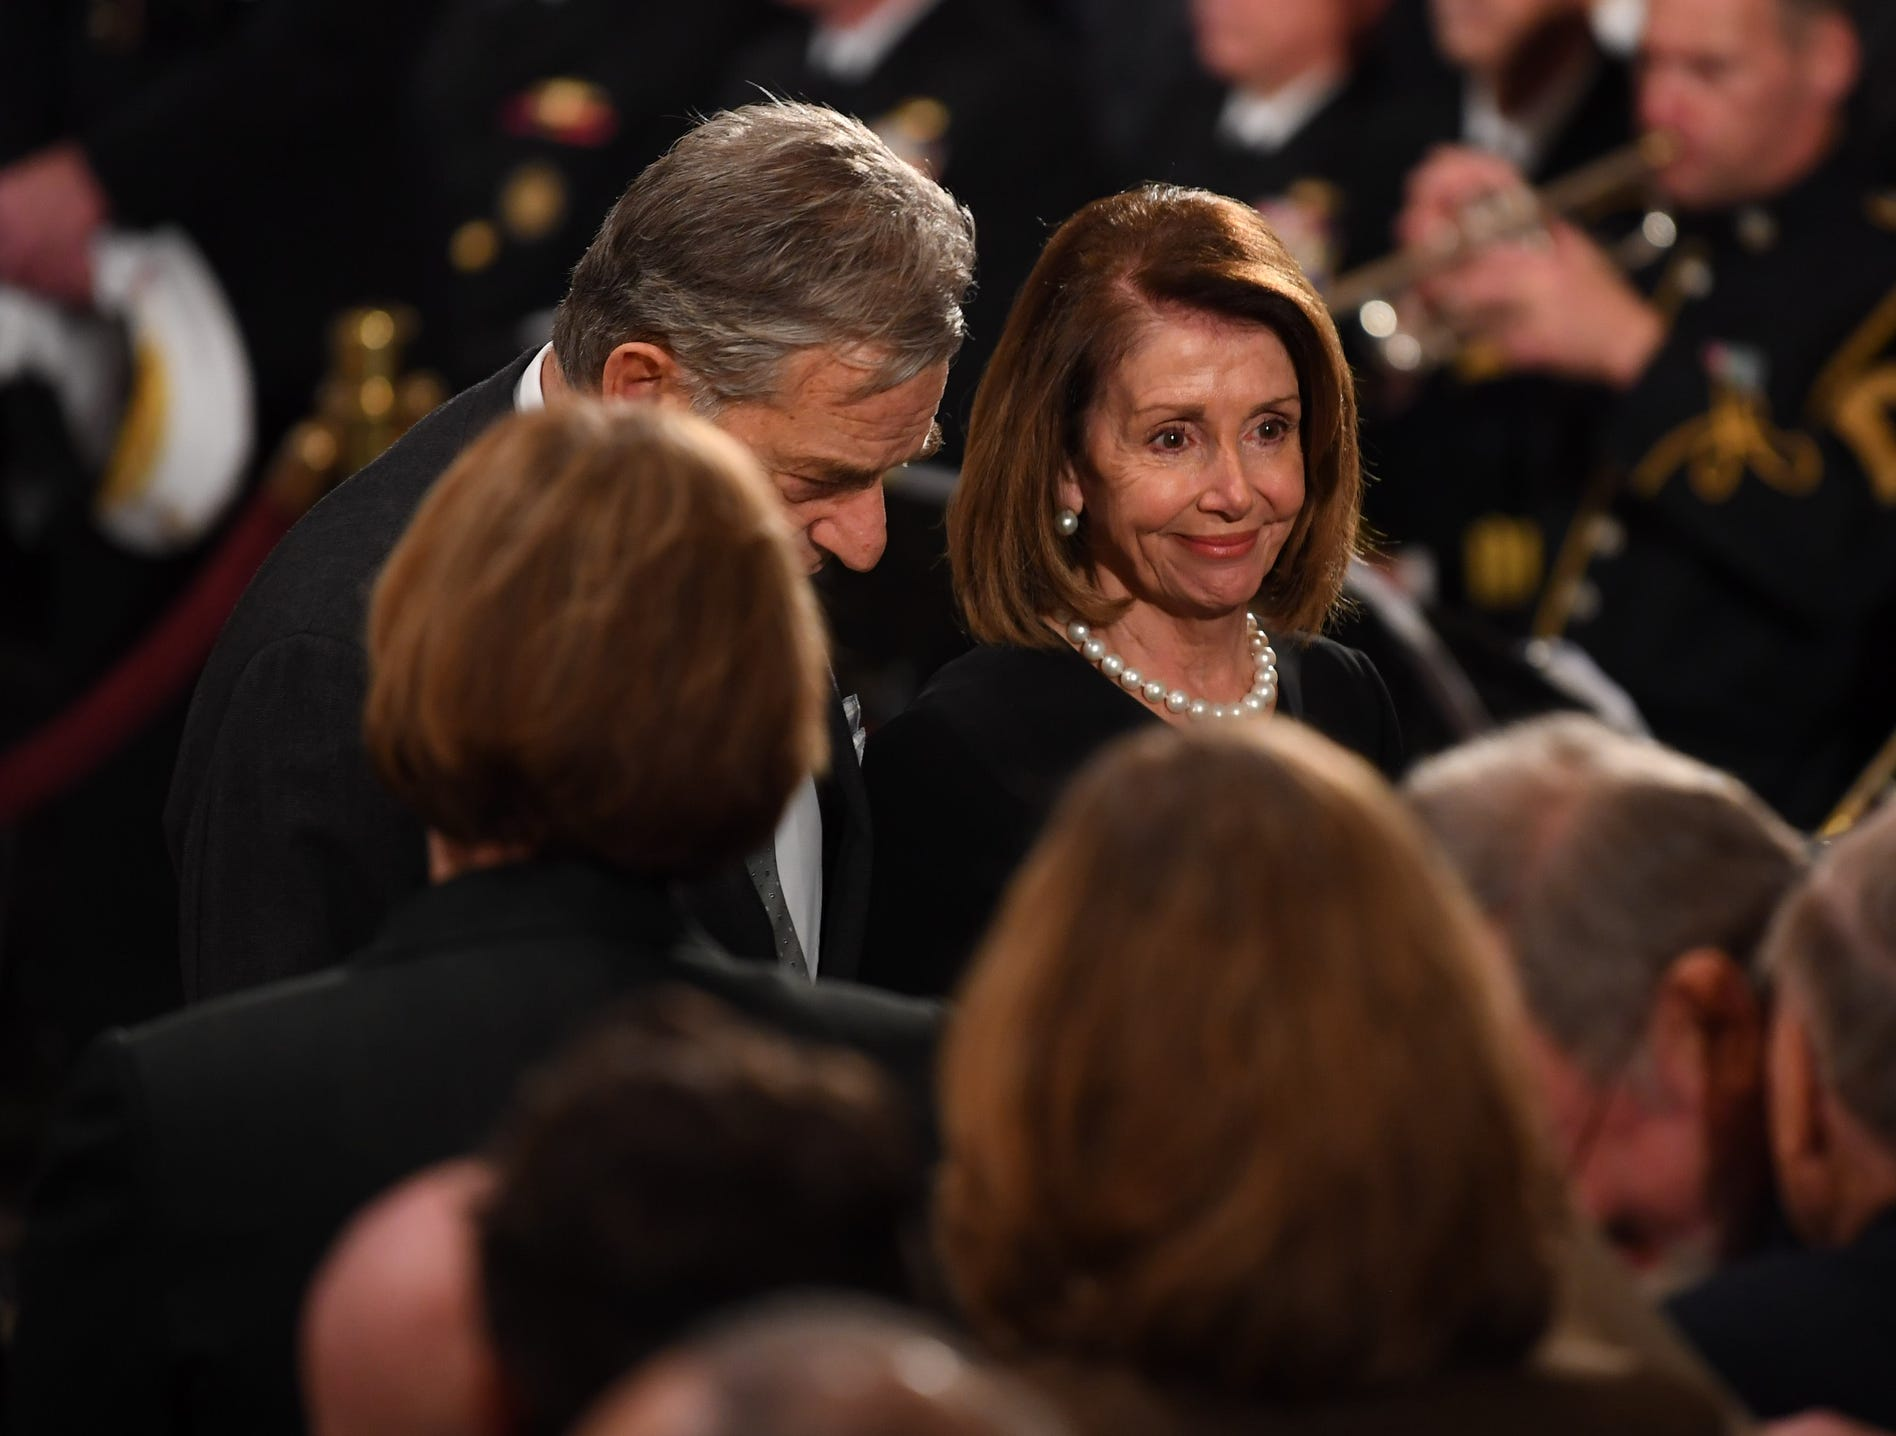 U.S. House Minority Leader Rep. Nancy Pelosi (D-CA)  smiles at the Capitol Rotunda service for the President George H.W. Bush.